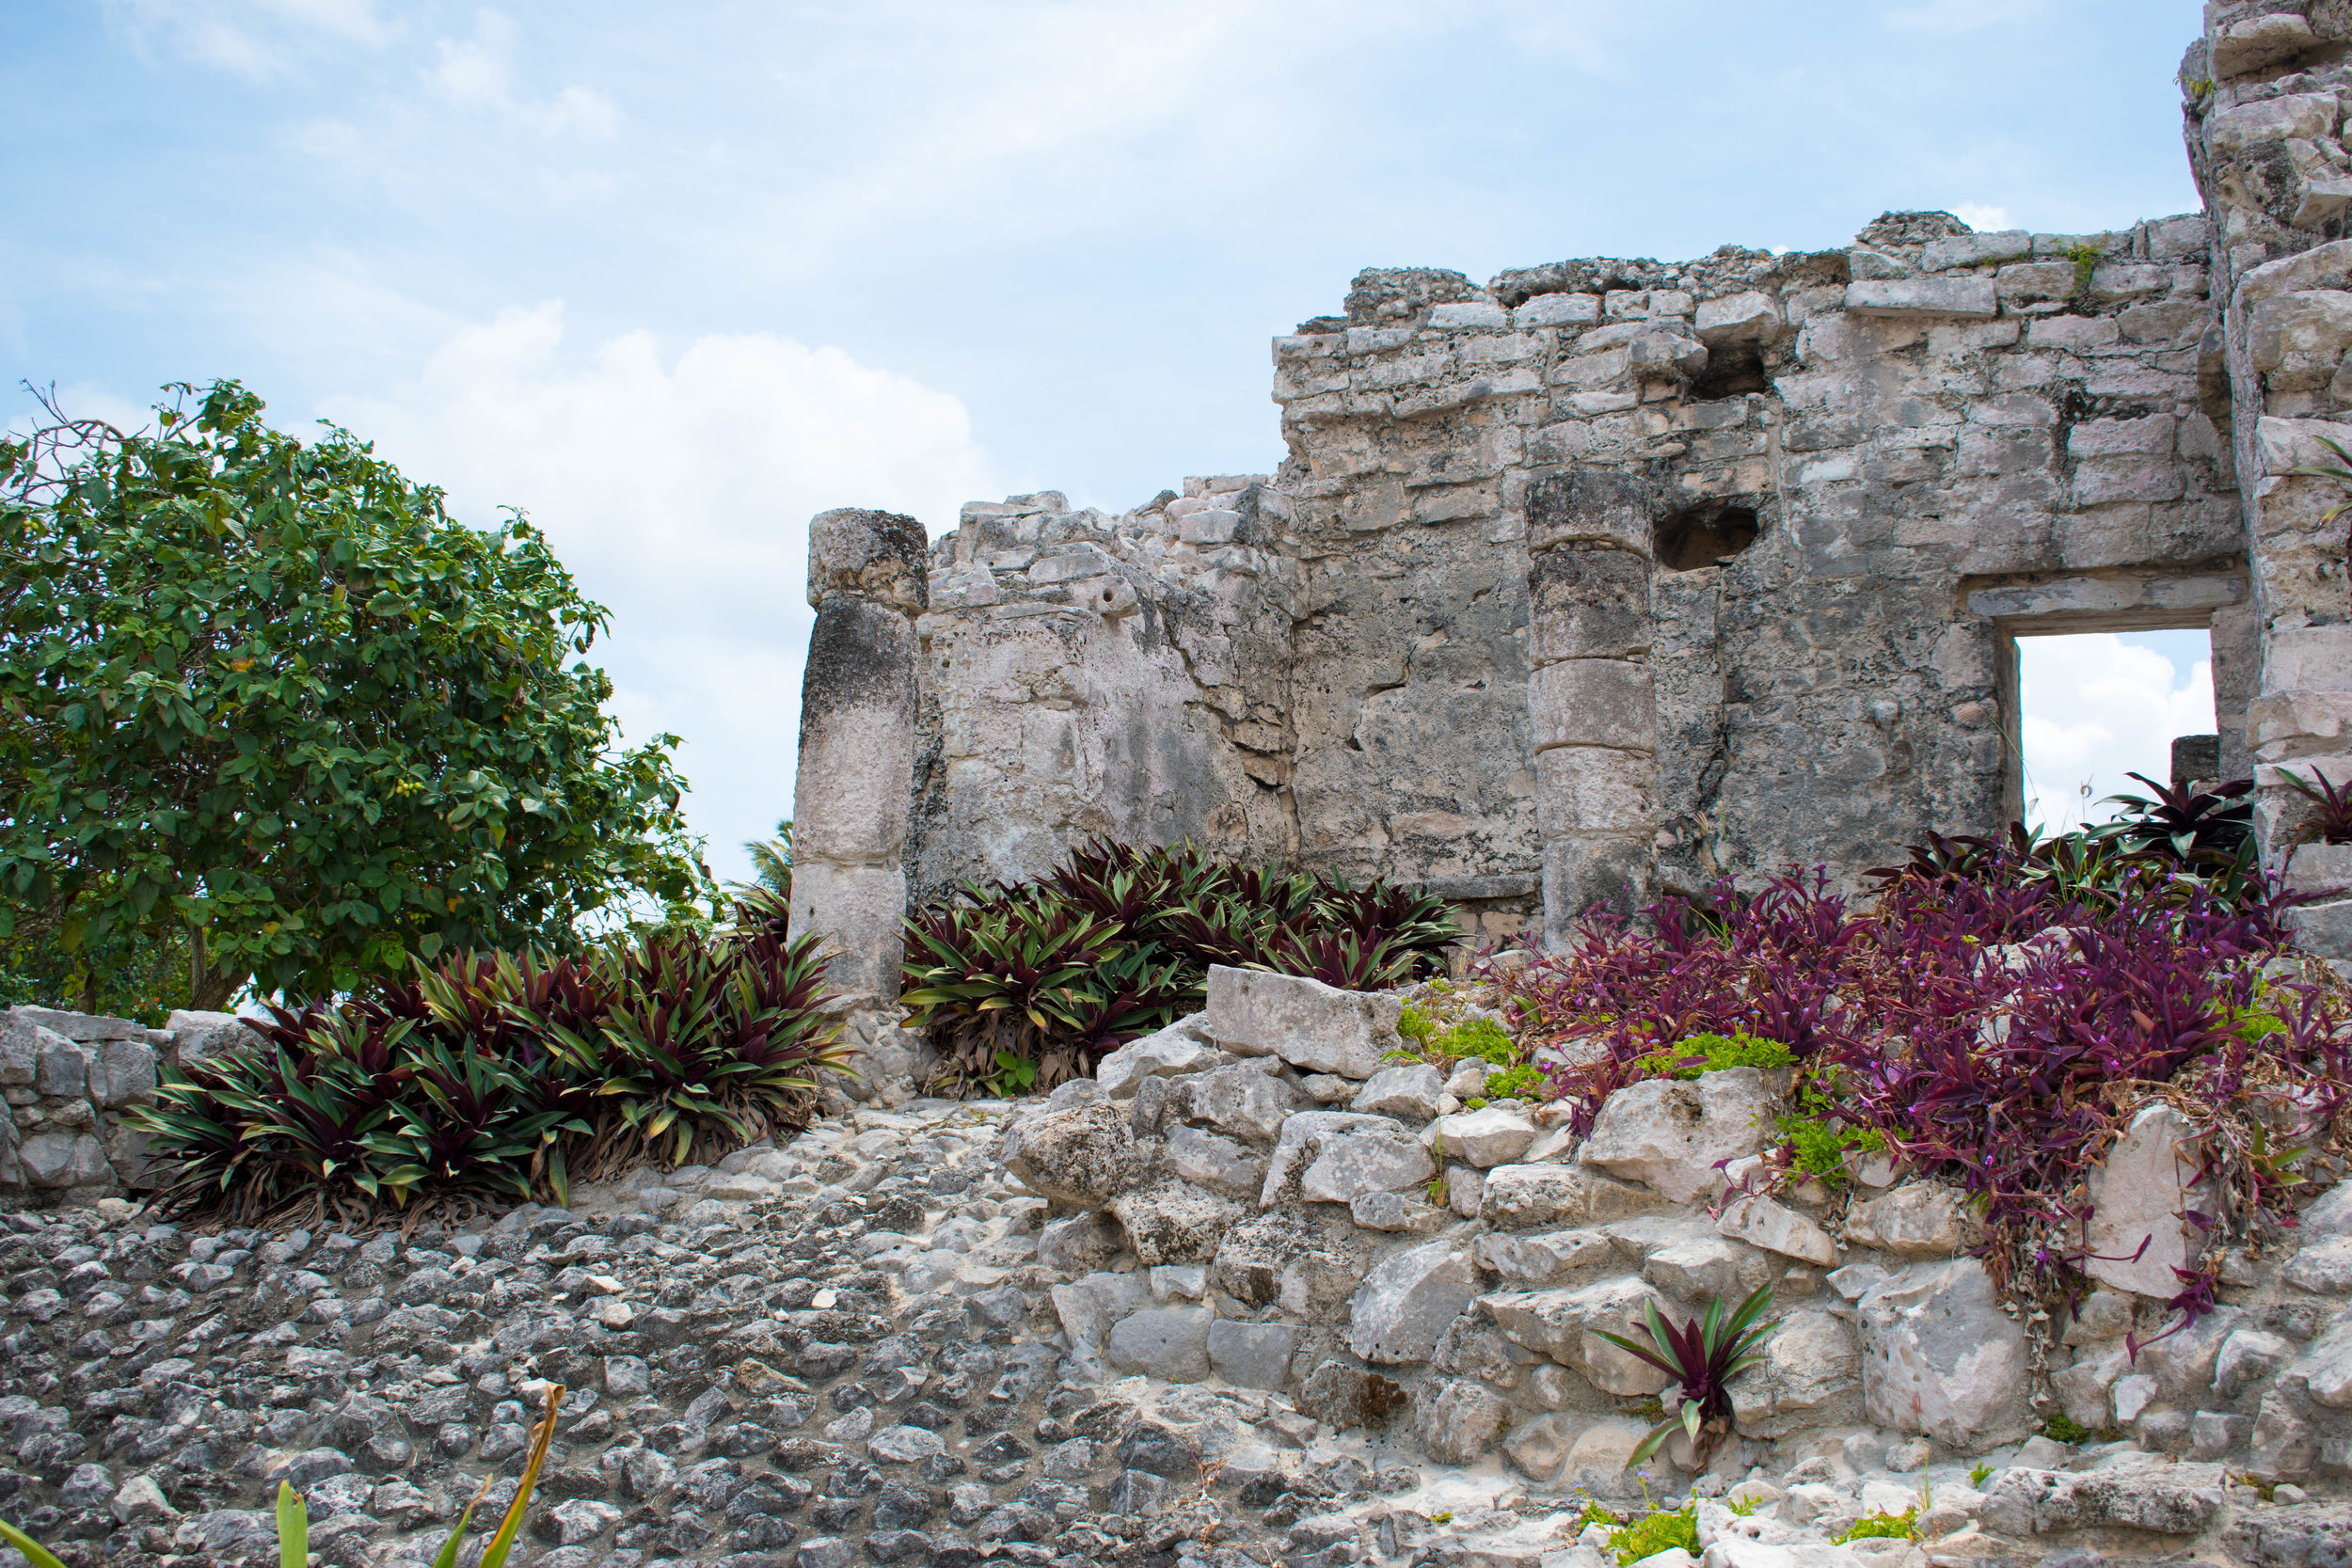 Plants and Stone at Tulum in Mexico